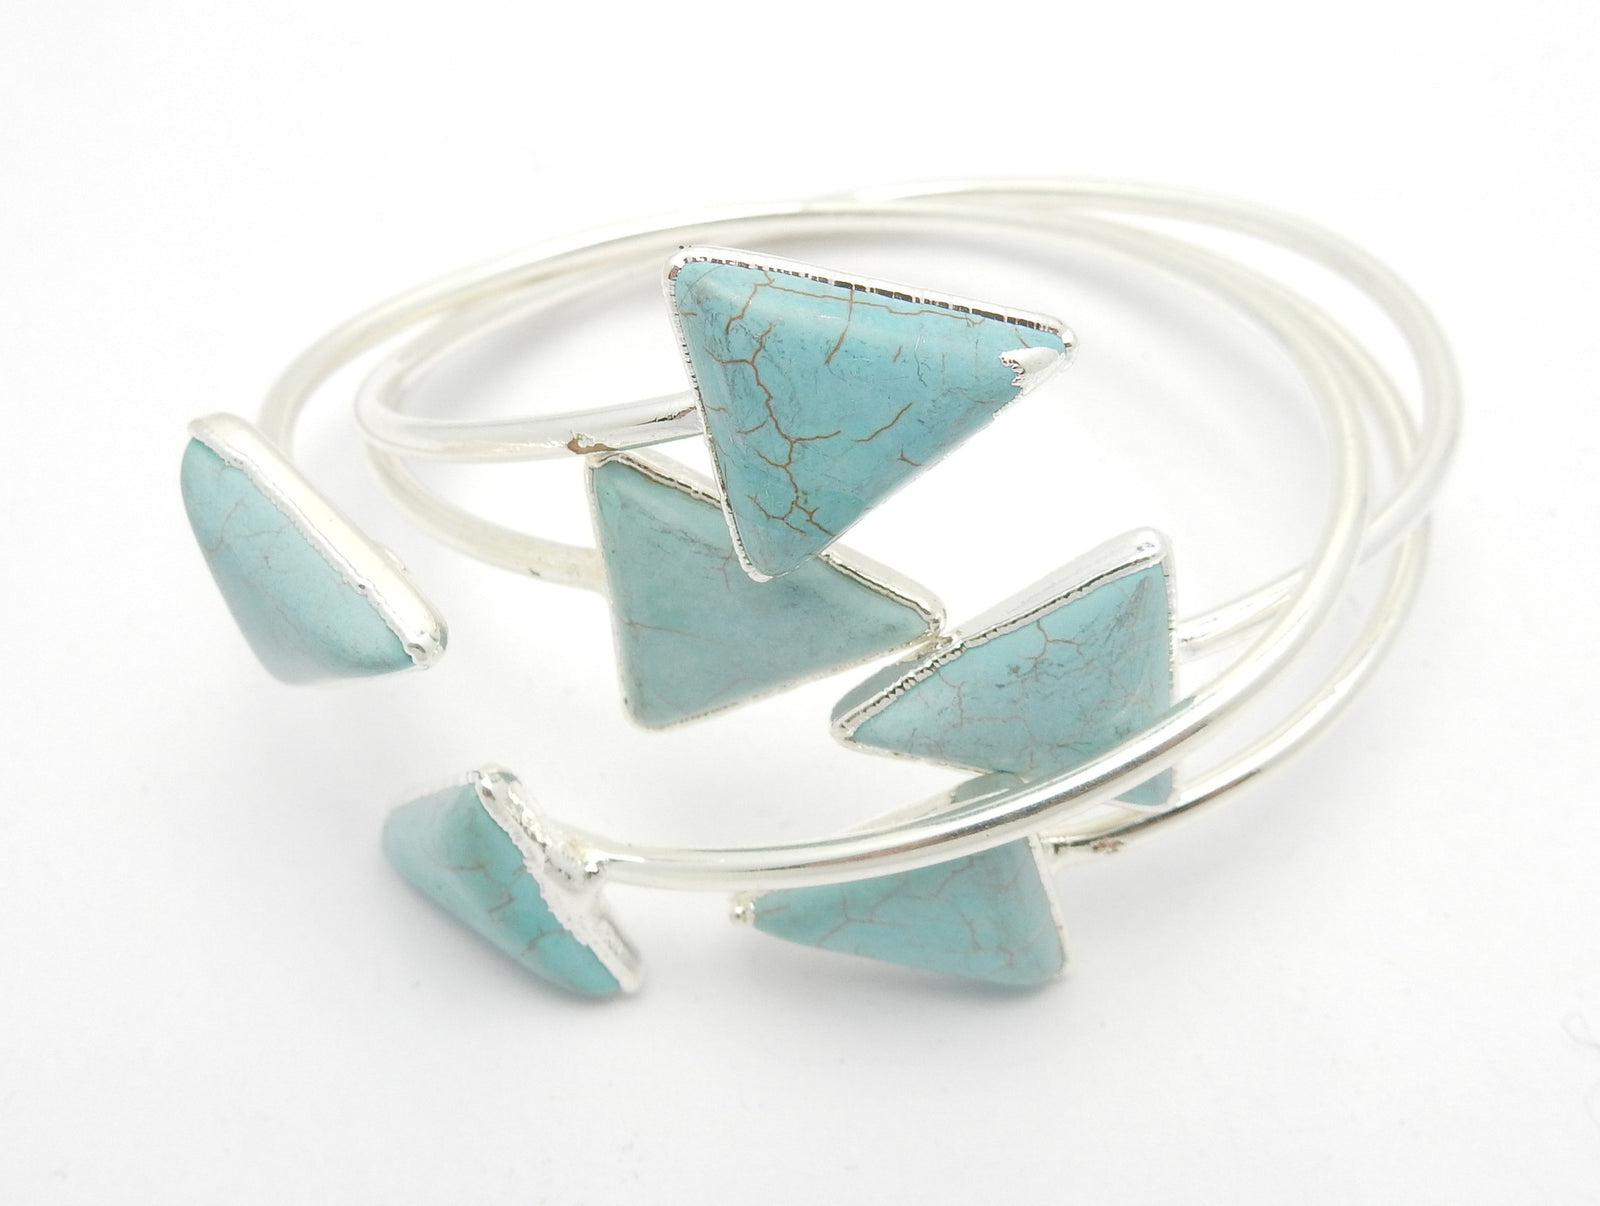 Turquoise Howlite Triangle Adjustable Cuff Sterling Silver or 24k gold electroplate (BRAC-Box-07-07)